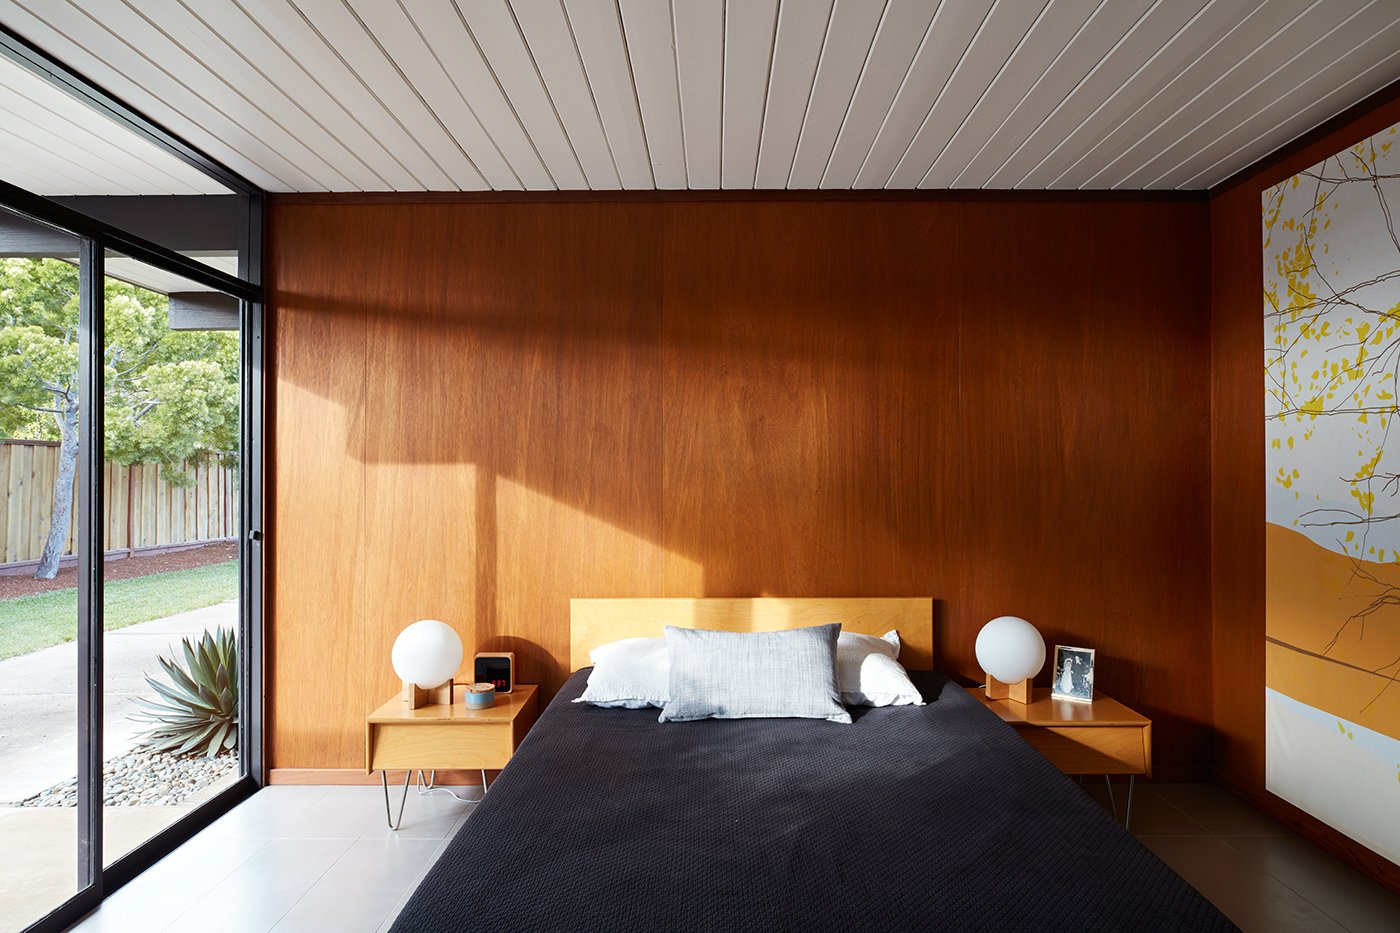 Bedroom, Bed, Night Stands, and Table Lighting  Photo 4 of 11 in A Midcentury Eichler in San Mateo Is Turned Into a Functional Family Home